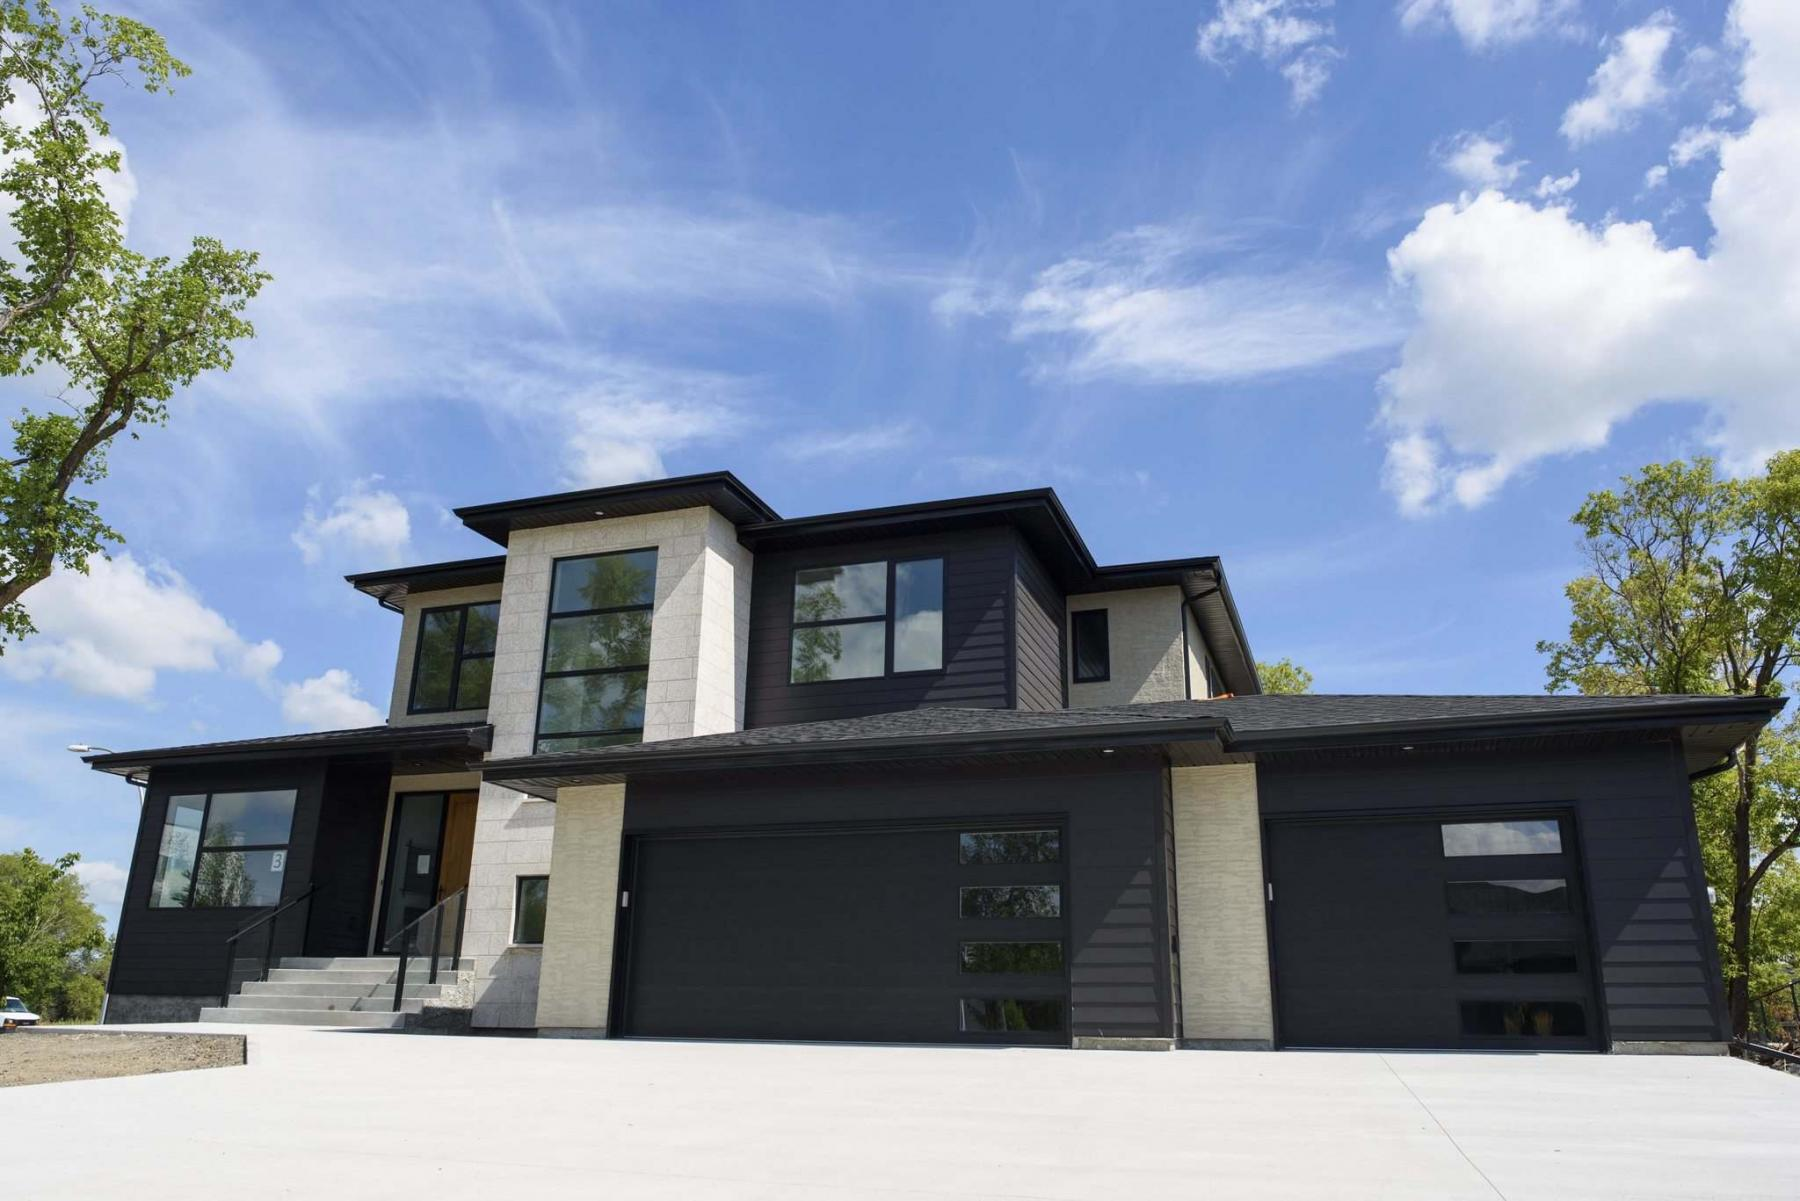 <p>JESSE BOILY / WINNIPEG FREE PRESS FILES</p><p>The Parade of Homes is the Manitoba Home Builders&rsquo; Association&rsquo;s twice-yearly showcase of new homes for every budget.</p></p>